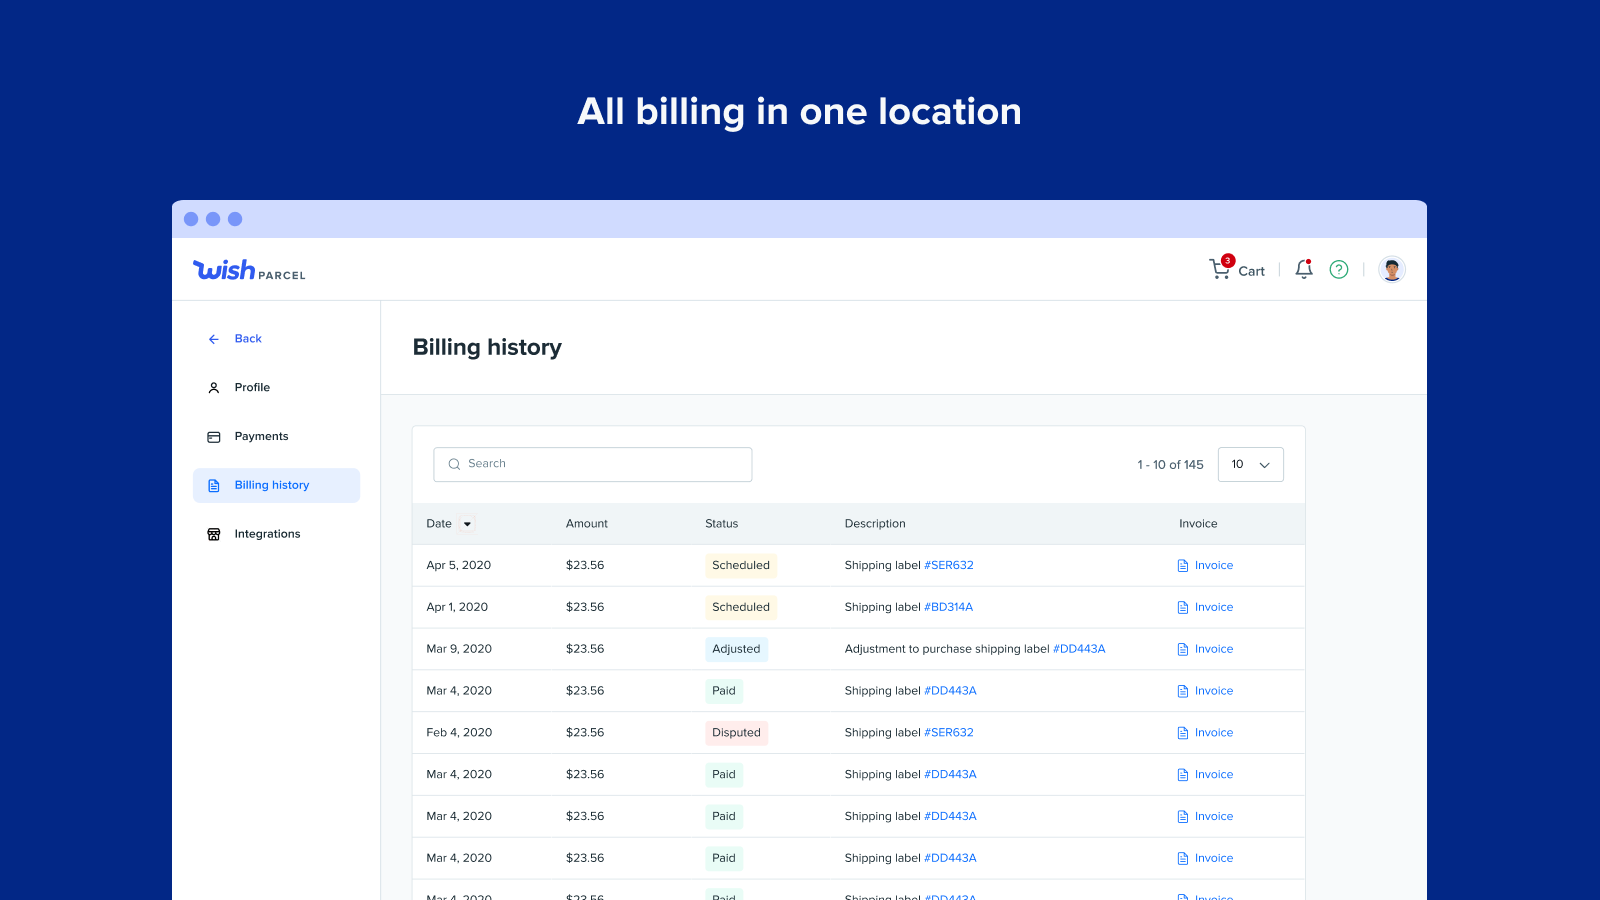 All billing in one location